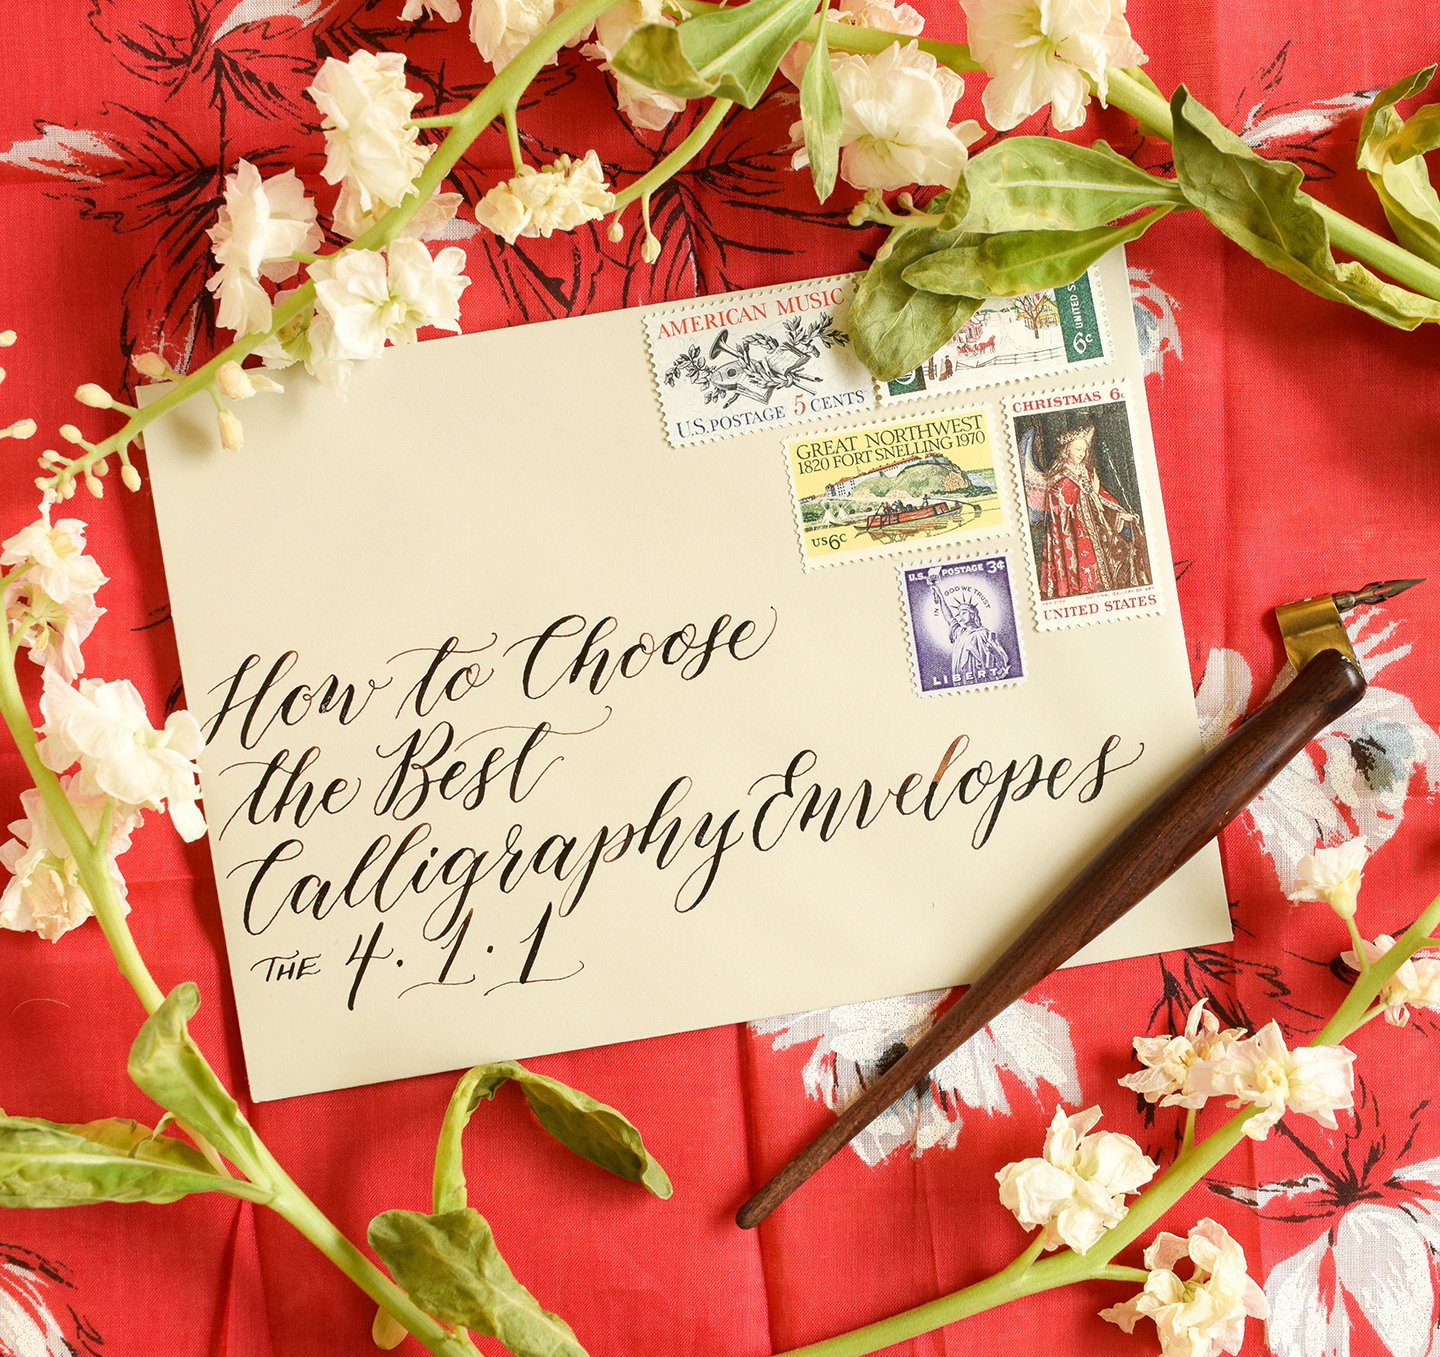 How to Choose the Best Calligraphy Envelopes | The Postman\'s Knock